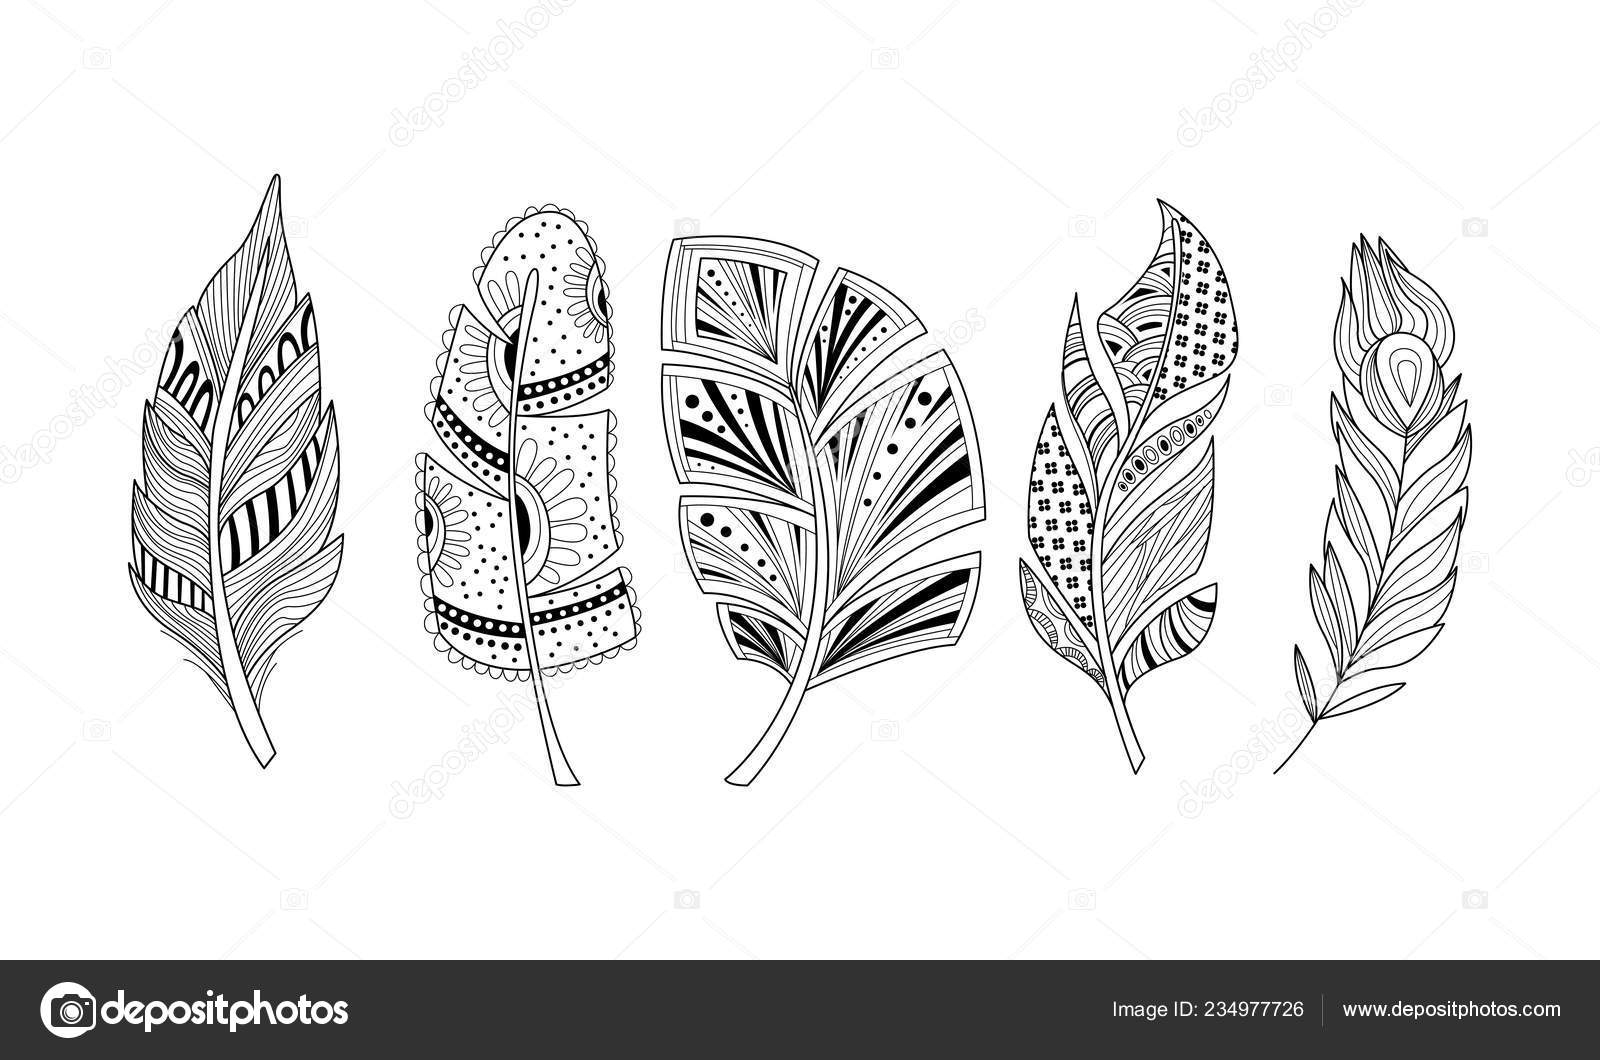 Stylized feathers set, black and white tribal, artistically